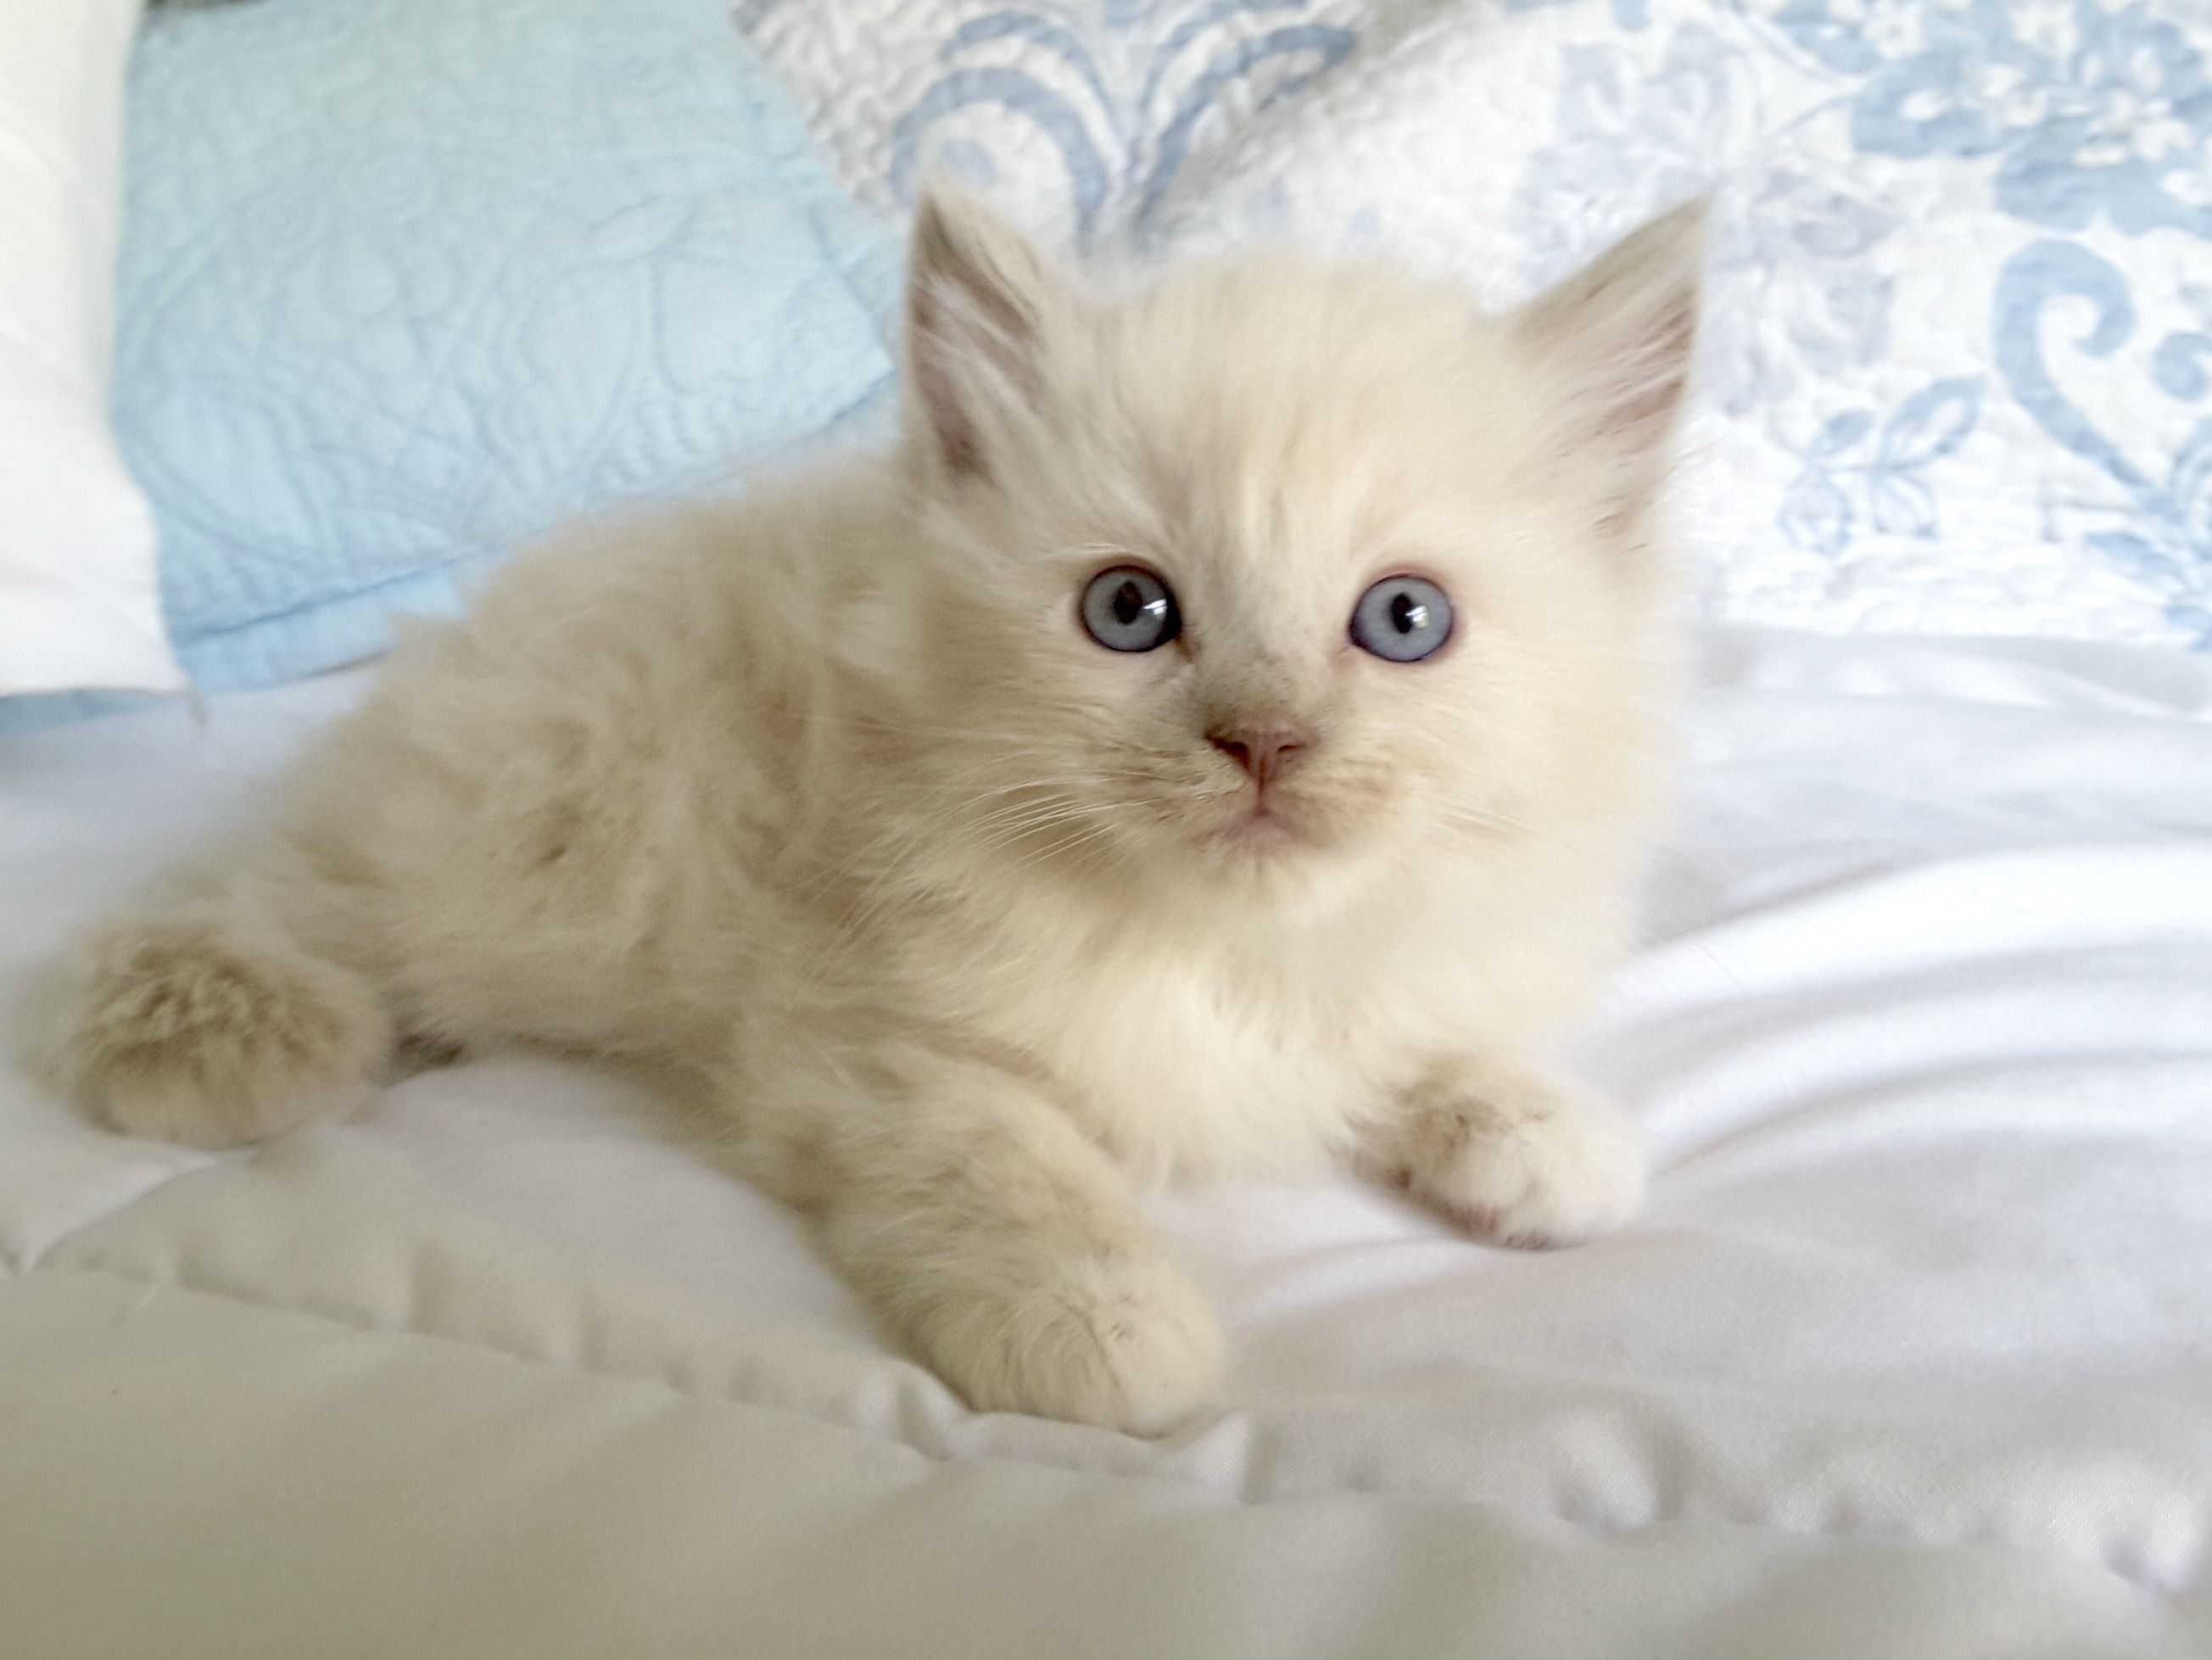 Available Ragdoll Kittens For Sale Mink And Sepia Ragdolls Ragdoll Kittens For Sale Ragdoll Kitten Kittens Cutest